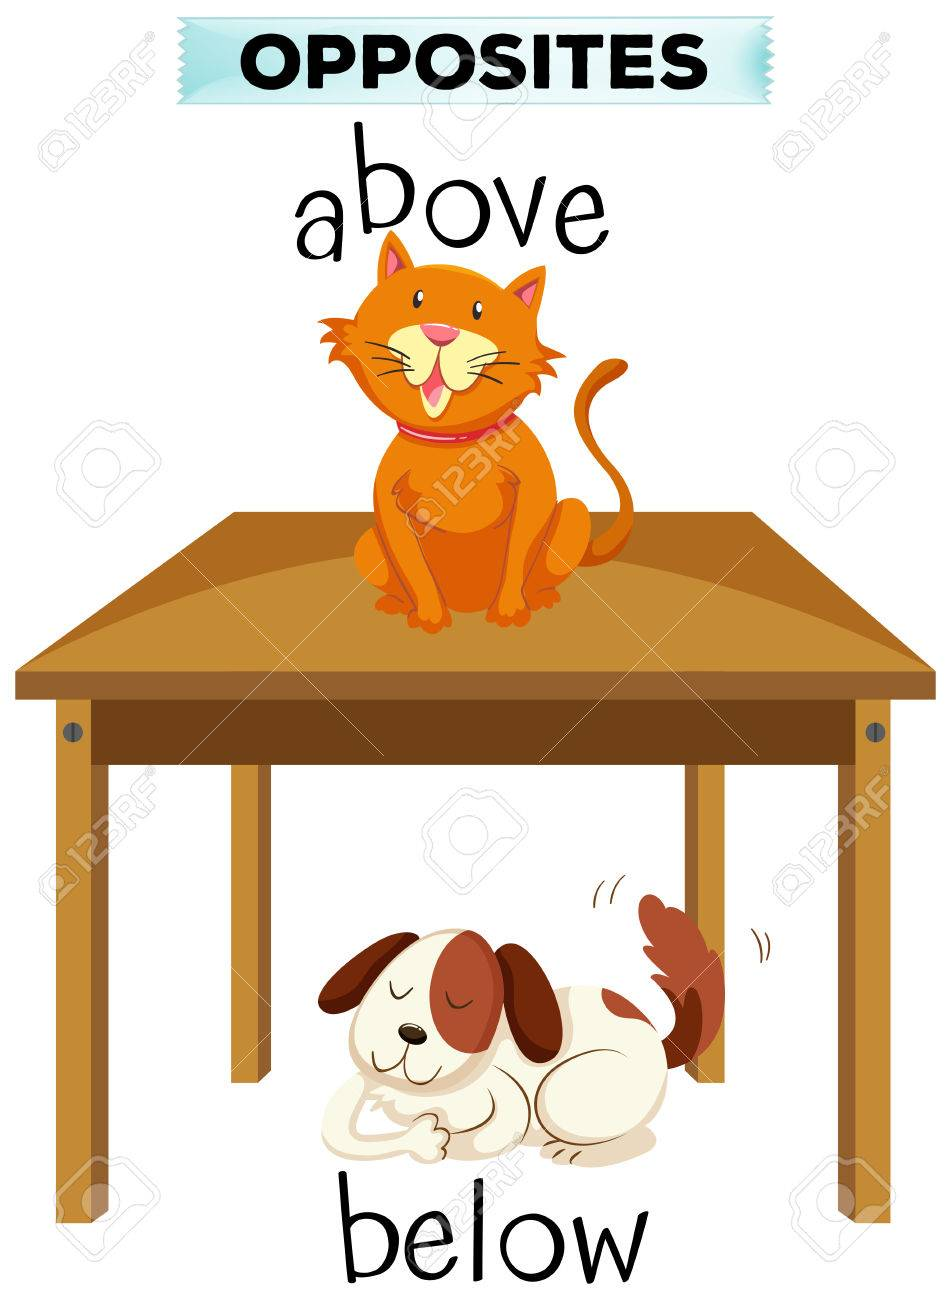 opposite words for above and below illustration royalty free